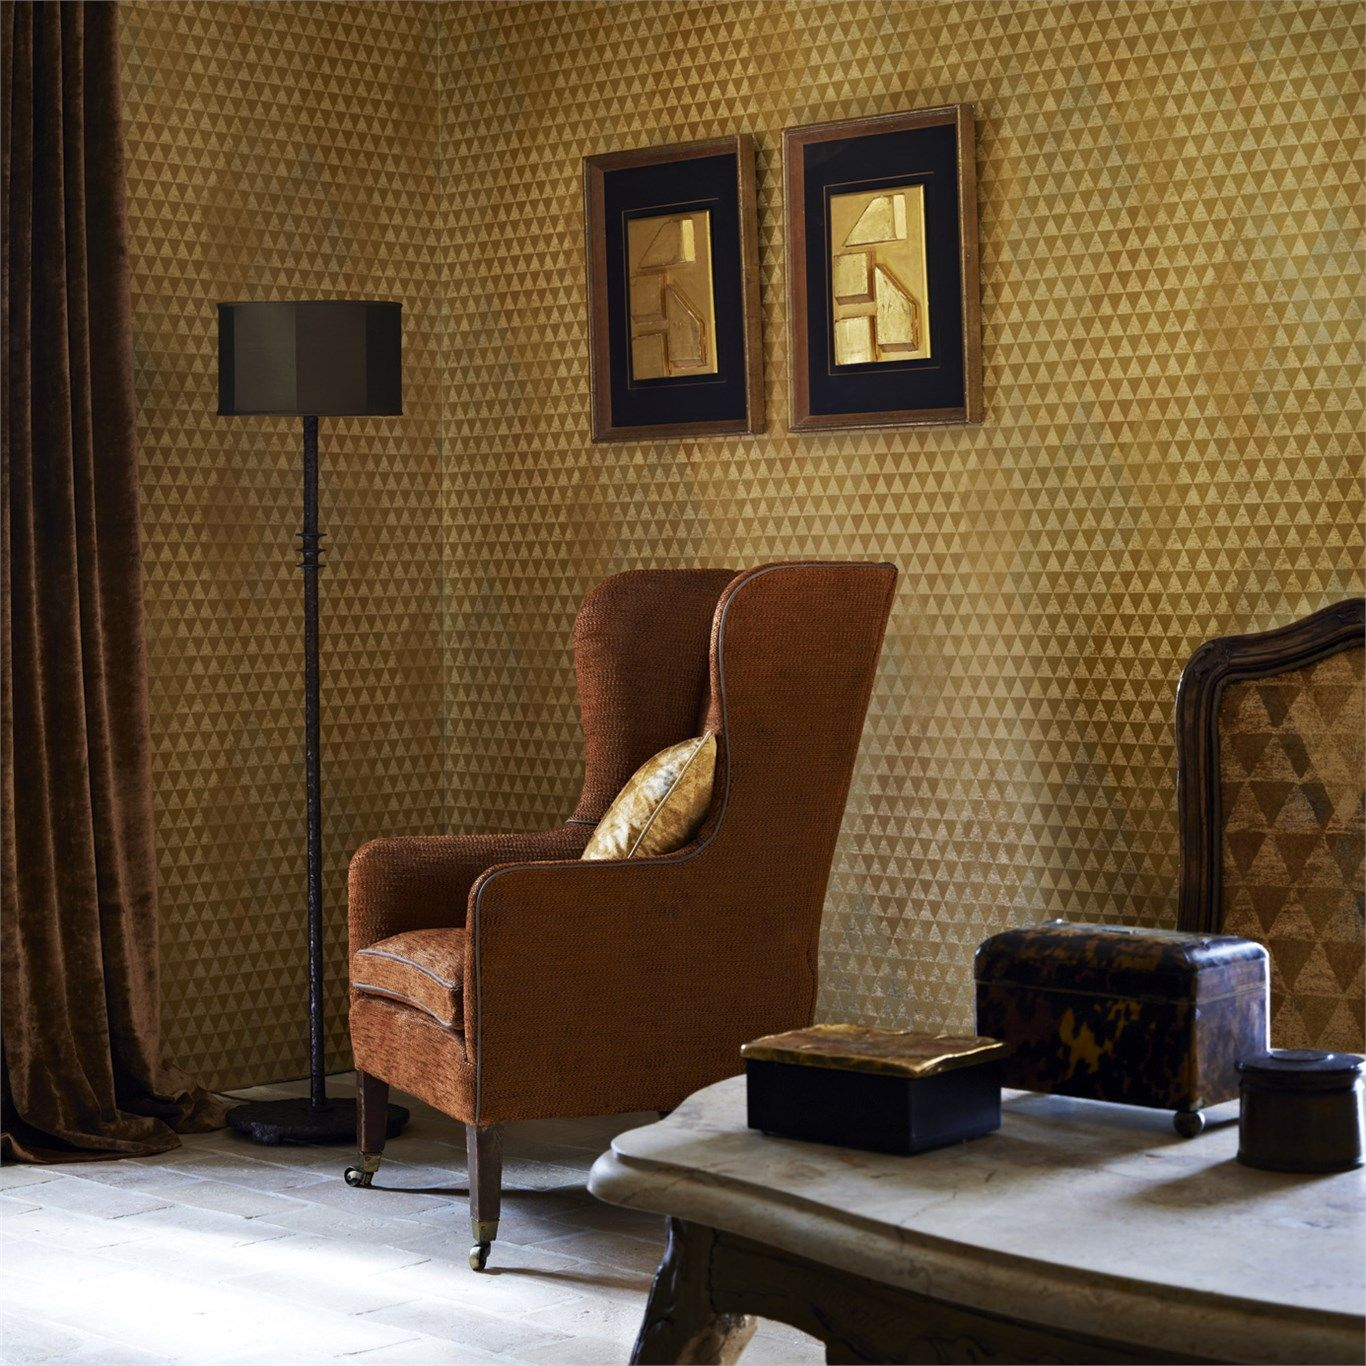 Zoffany   Luxury Fabric And Wallpaper Design | Products | British/UK Fabric  And Wallpapers